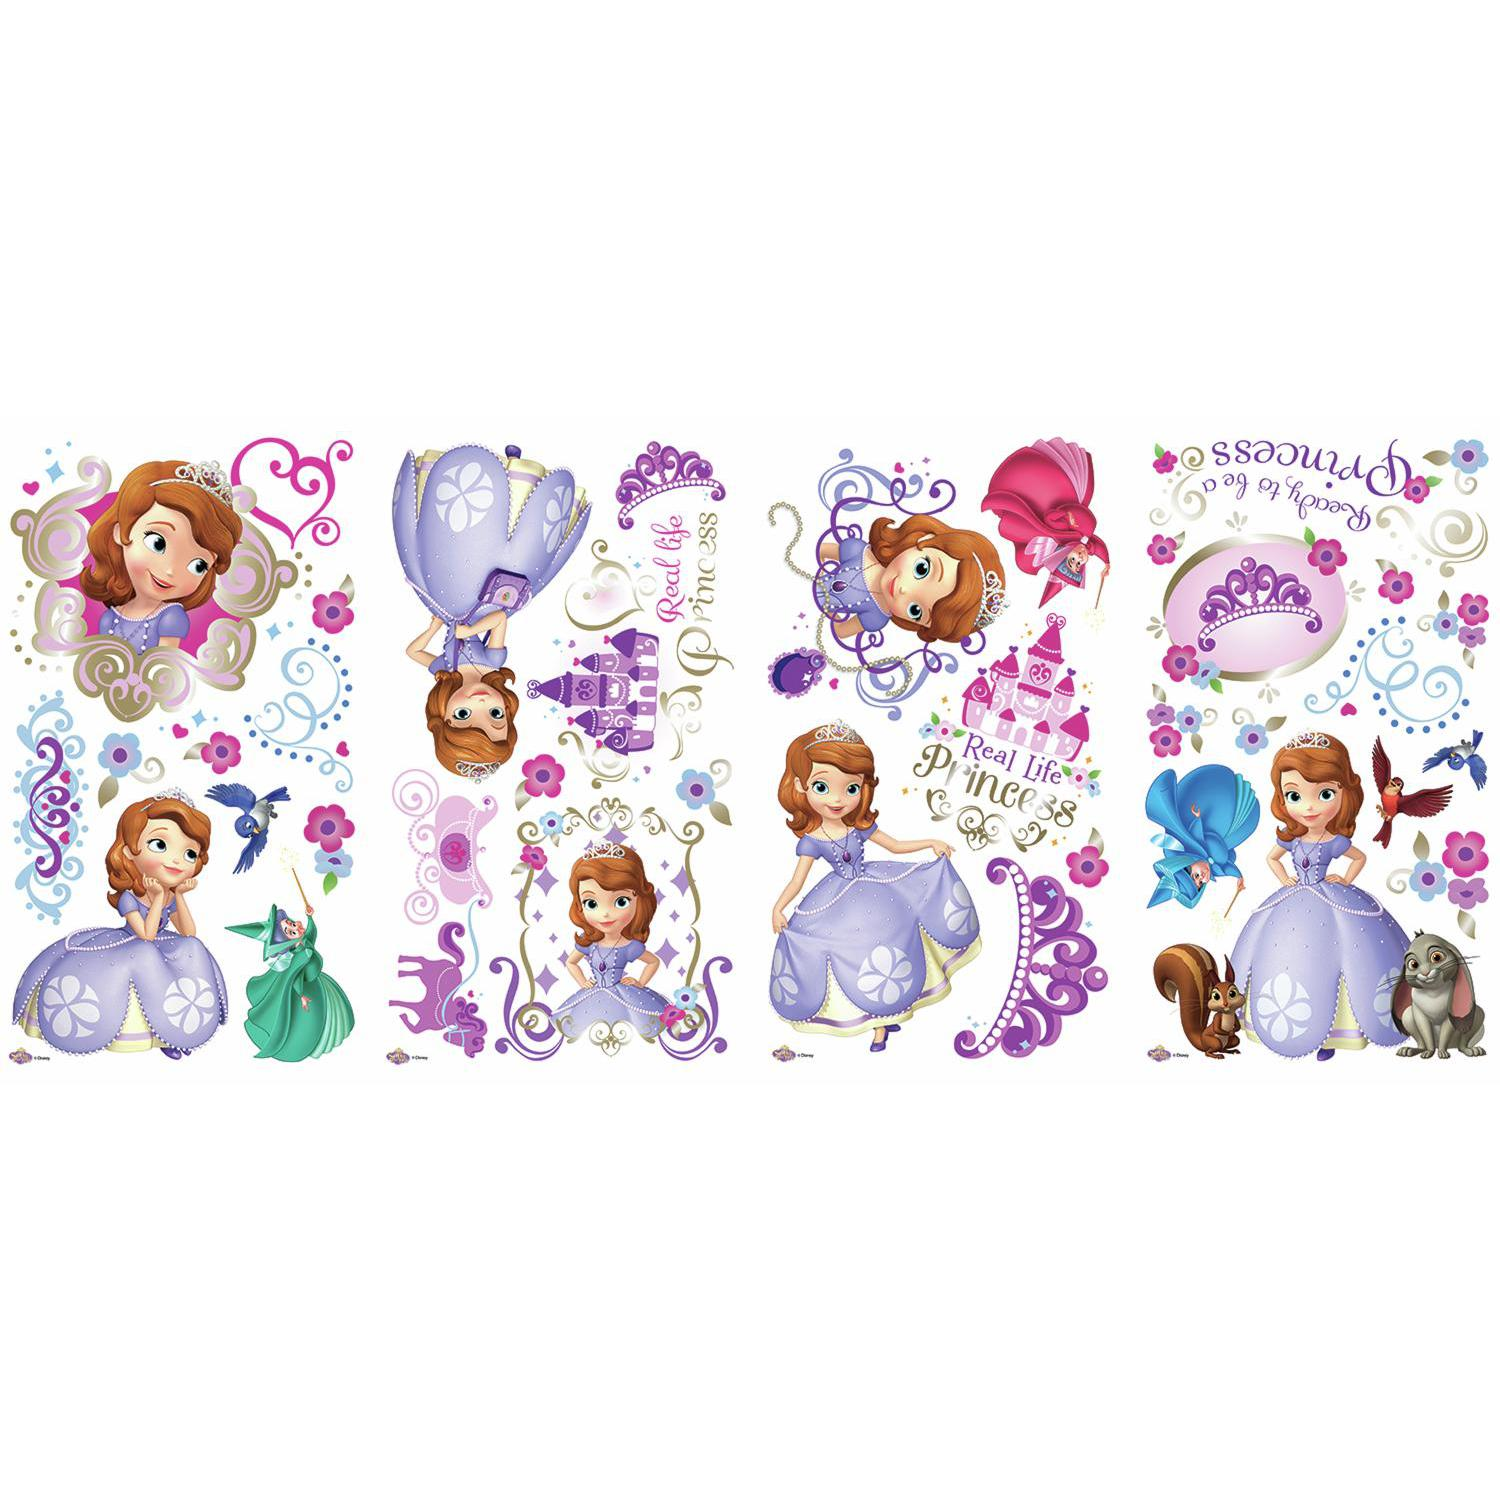 Sofia The First Wall Stickers 37 Decal Disney Princess